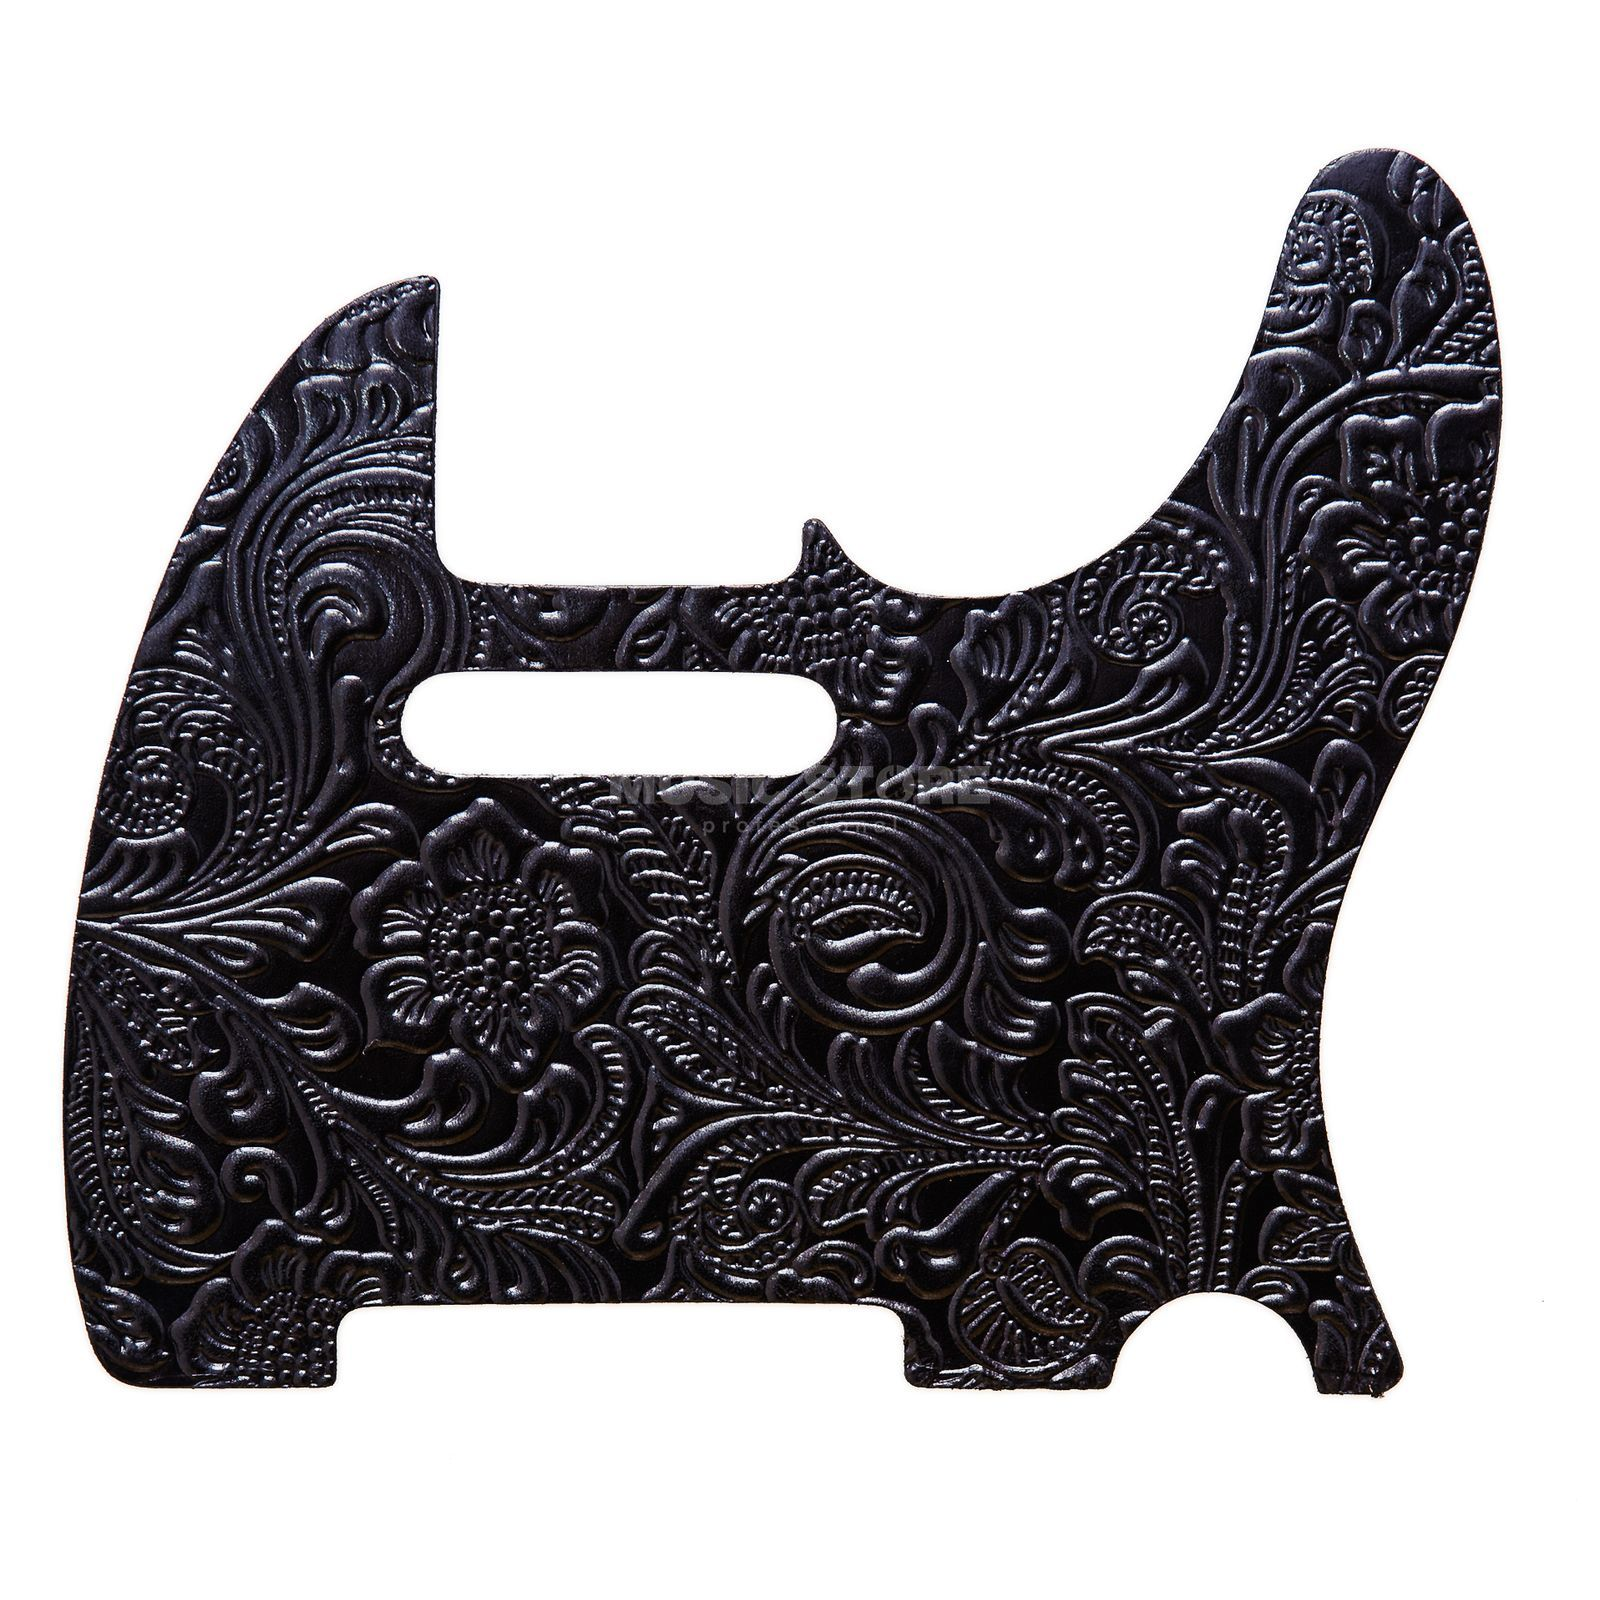 RightOn! Straps Pickguard T-Style Black Leather Engraved Produktbild